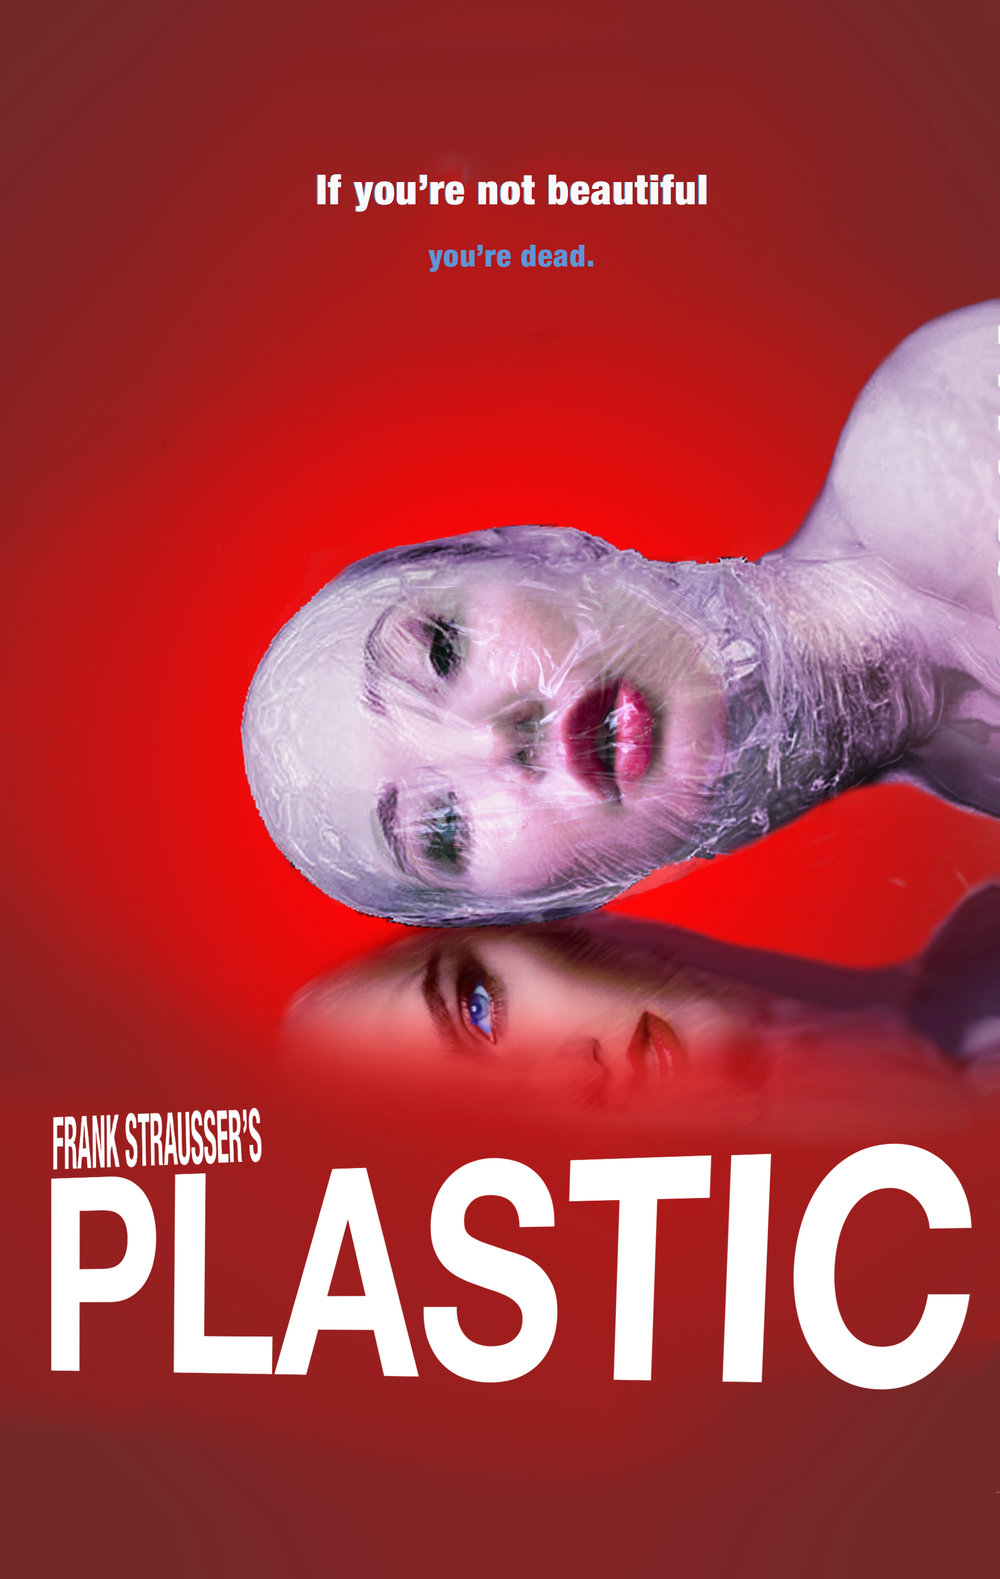 Plastic - A Novel by Frank StrausserWHEN A BEVERLY HILLS PLASTIC SURGEON IS BROUGHT IN TO SURGICALLY ERASE EVIDENCE OF A CRIME AFTER A BEAUTIFUL POP STAR SUFFERS A DISFIGURING ASSAULT, HE DOES THE ONE THING A DOCTOR SHOULDN'T, HE BEGINS TO CARE.PUBLICATION IS FORTHCOMING IN JUNE 2019 / RARE BIRD BOOKS.